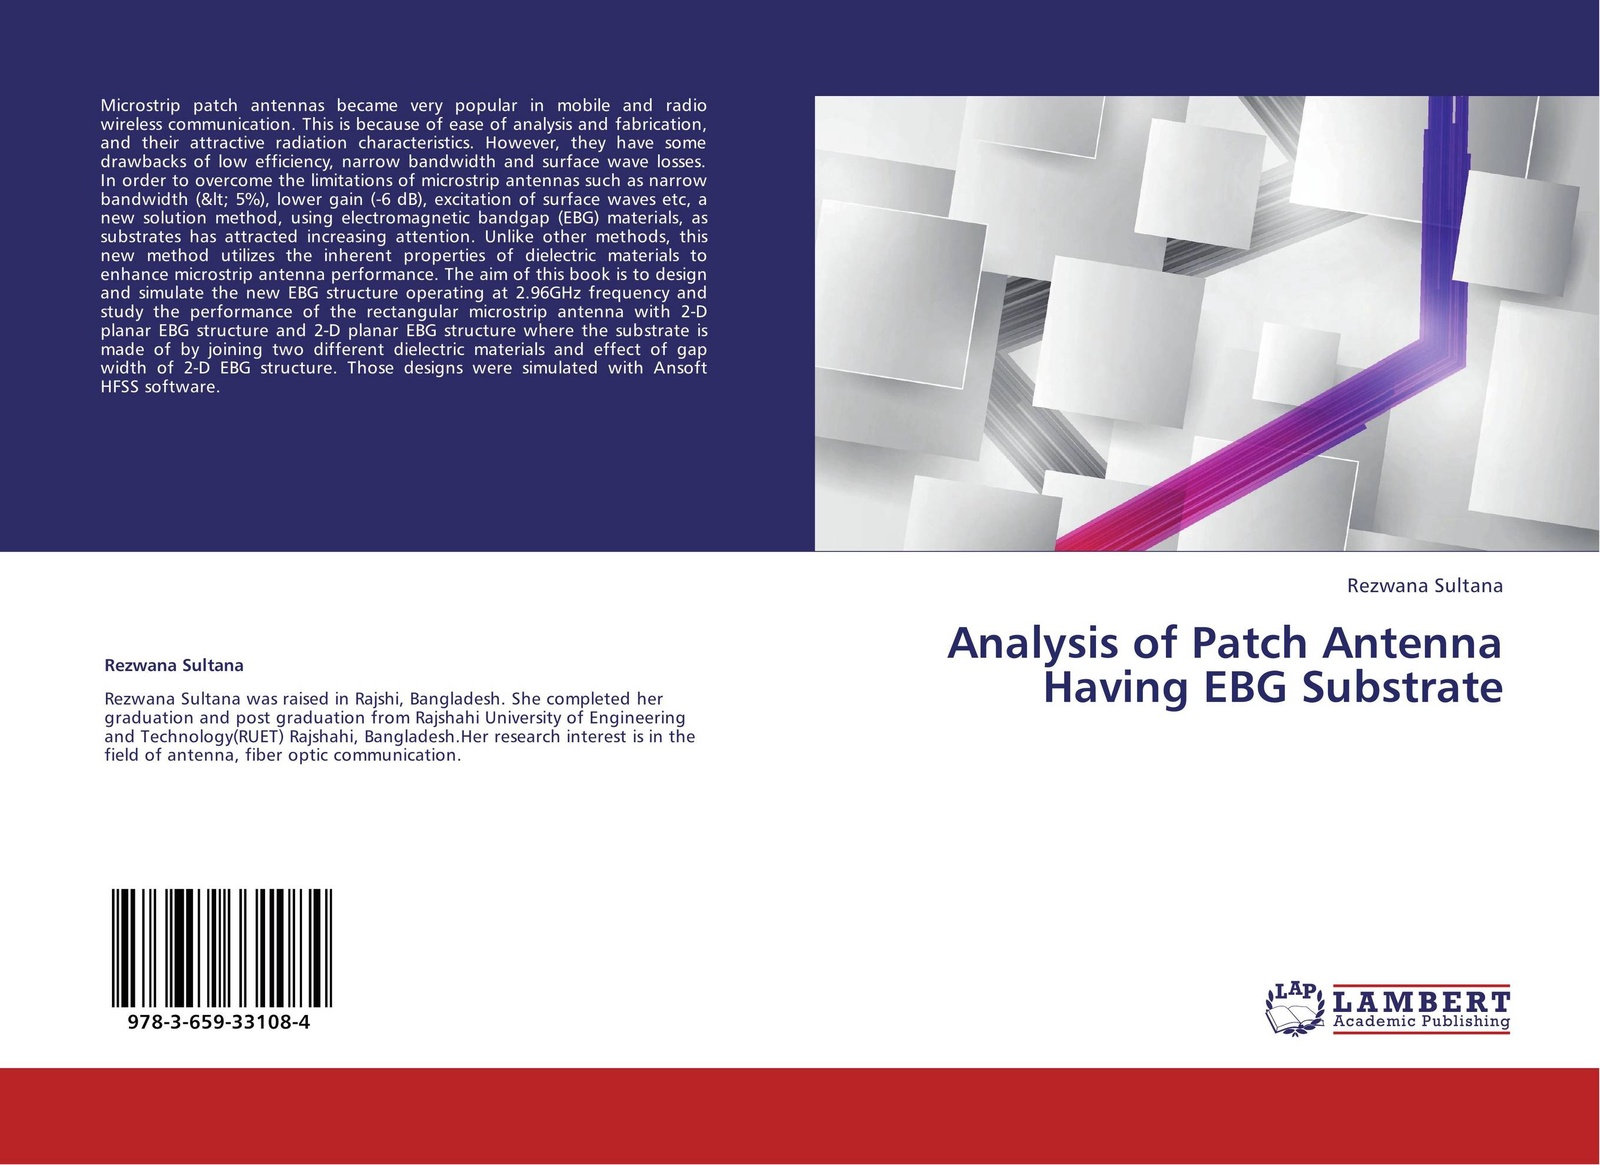 Rezwana Sultana Analysis of Patch Antenna Having EBG Substrate bruce archambeault electromagnetic bandgap ebg structures common mode filters for high speed digital systems